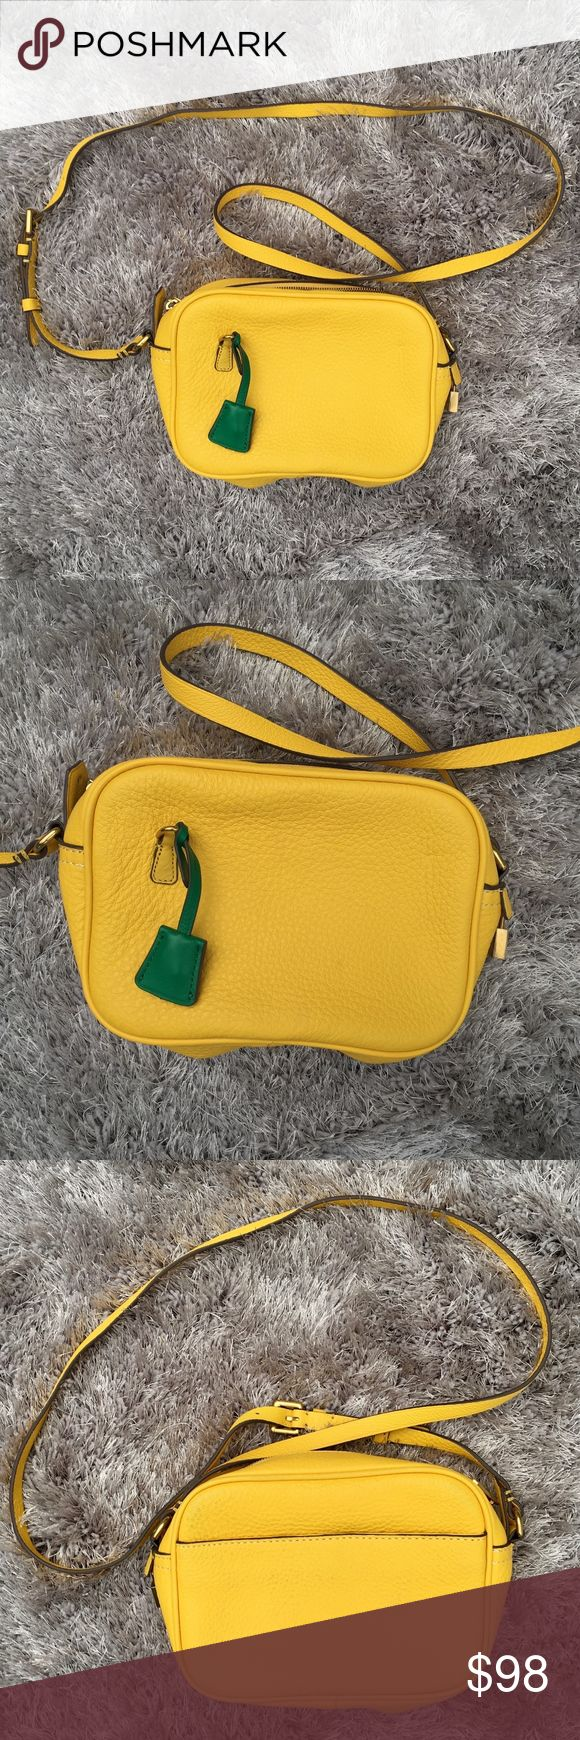 """J. Crew Signet Bag in Italian Leather Beautiful Signet Bag by J. Crew Genuine Italian leather Zipper closure Inside pocket Key fob & lock 6 1/4"""" H x 8 1/2"""" W x 3"""" D 24"""" adjustable strap  Brand new without tags, never used J. Crew Bags Crossbody Bags"""